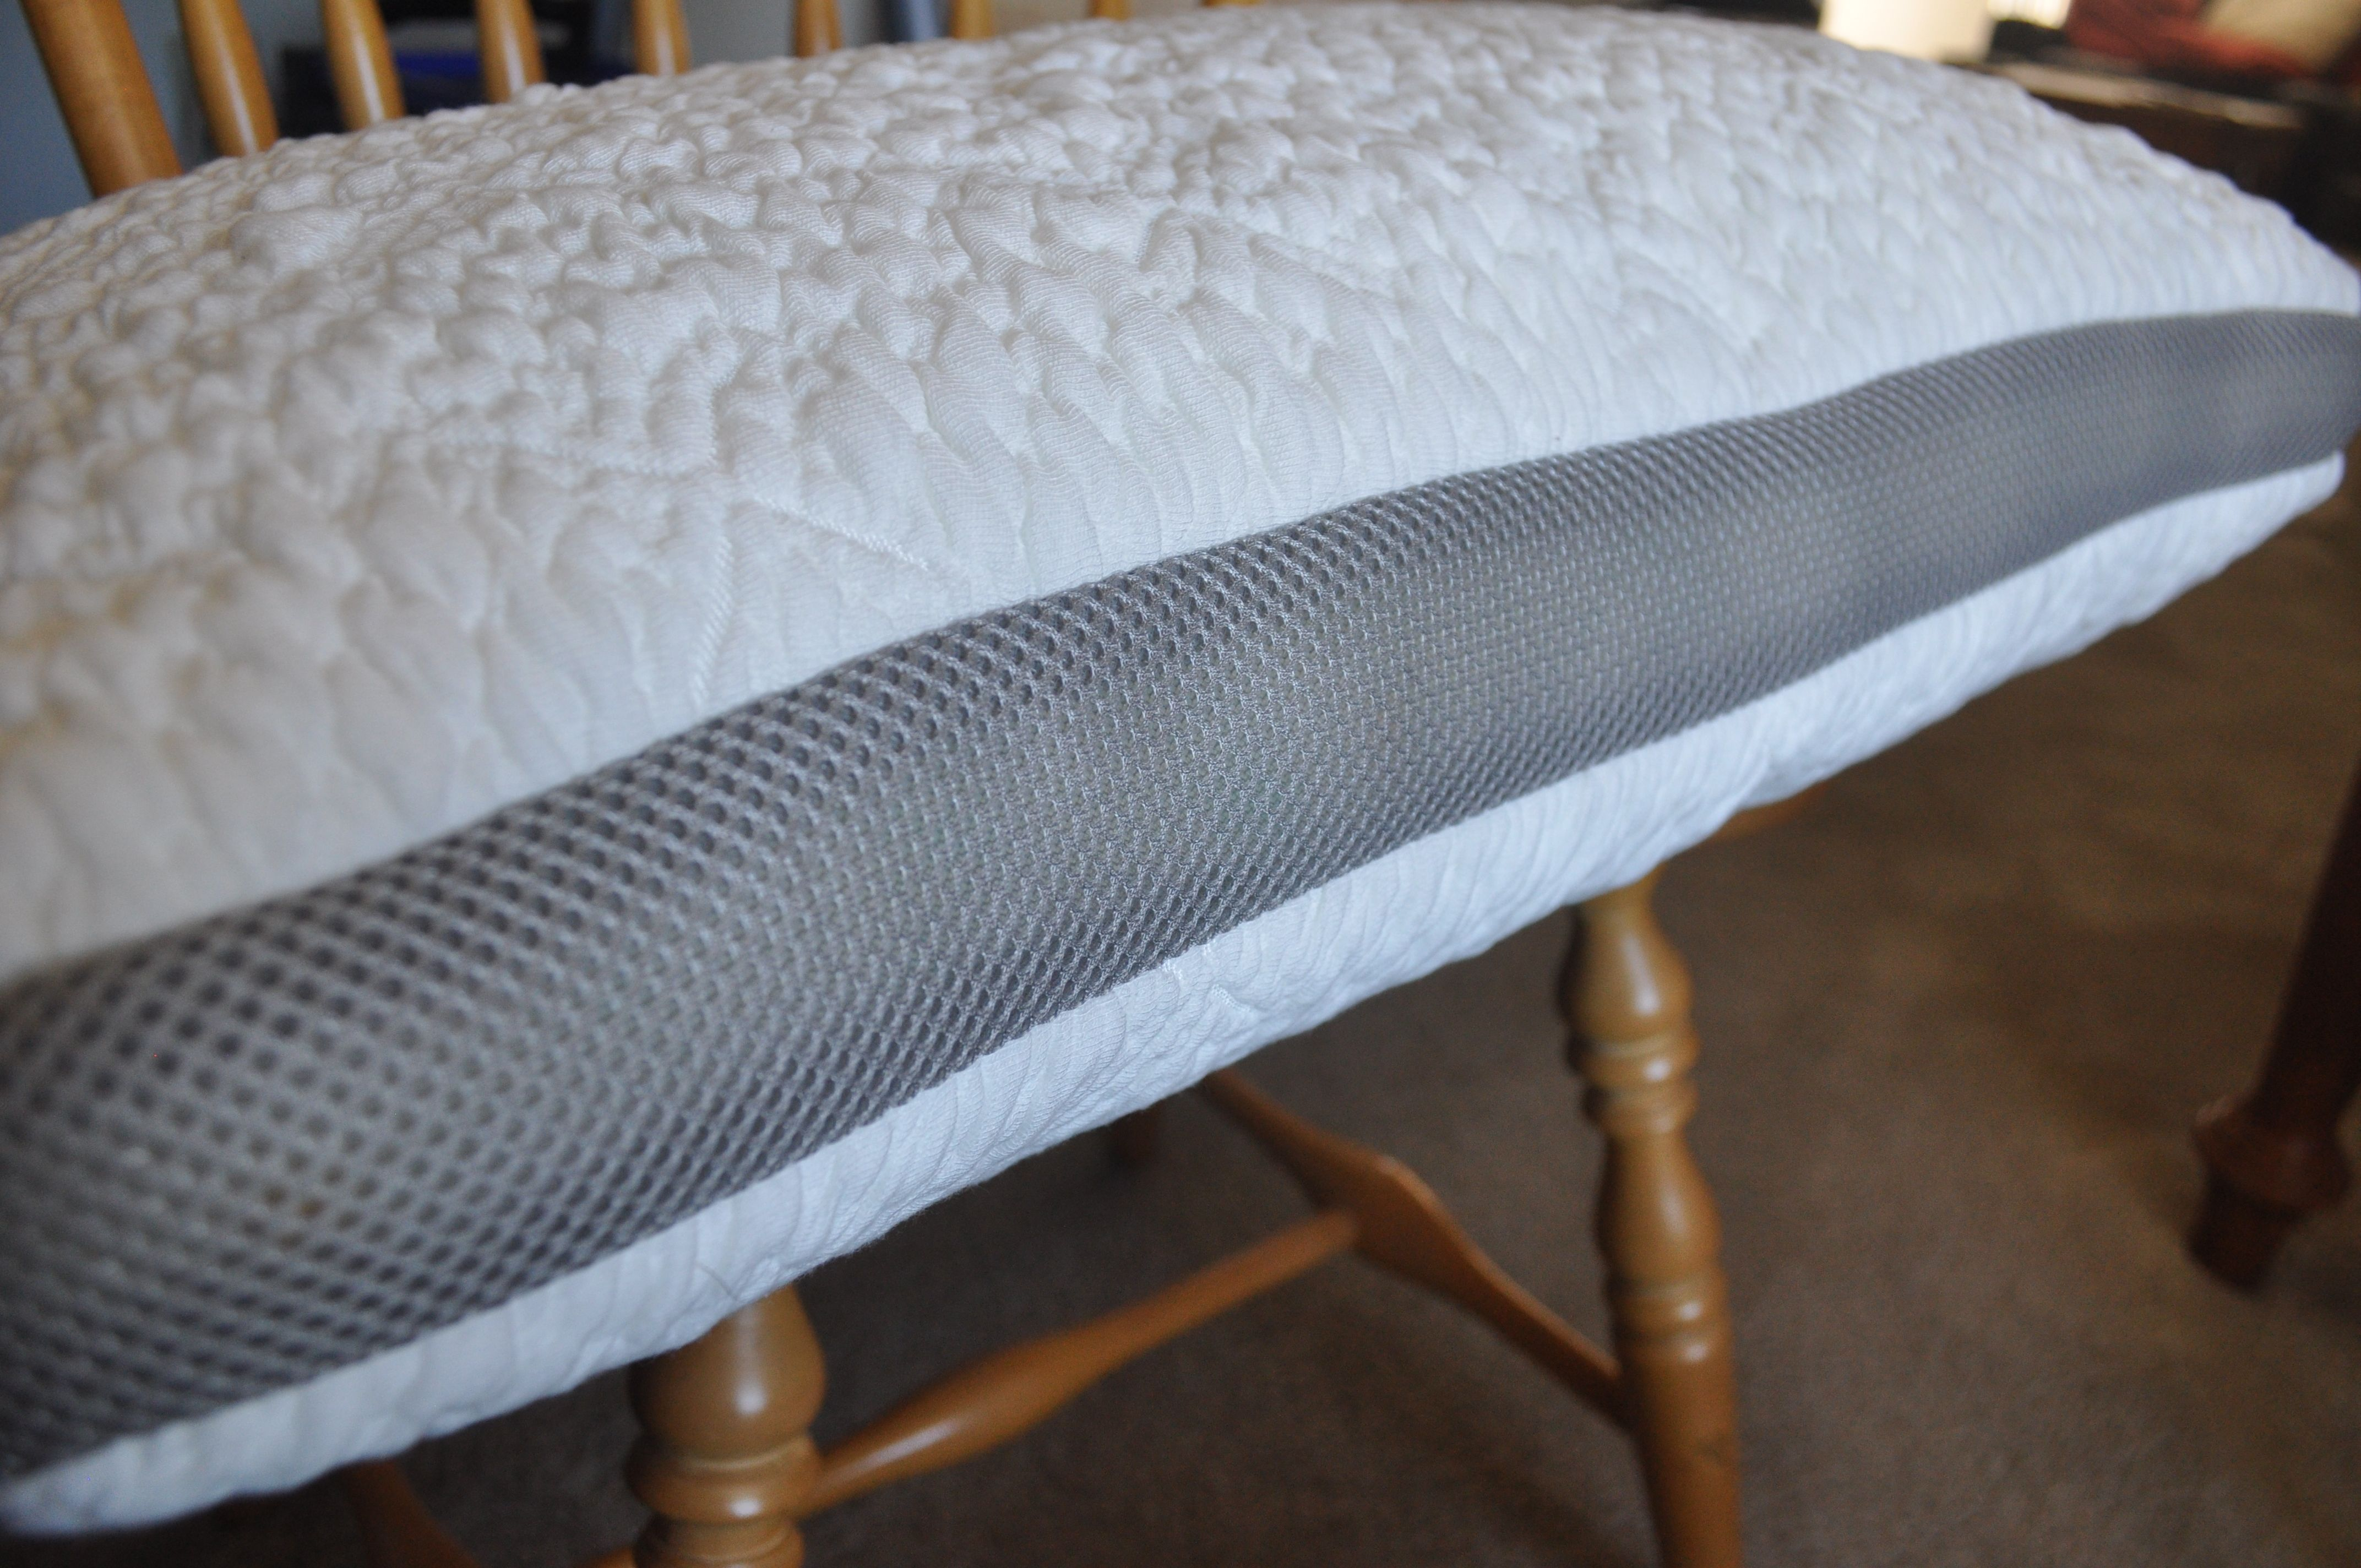 Nest Easy Breather Pillow Review Pillow reviews, Bed